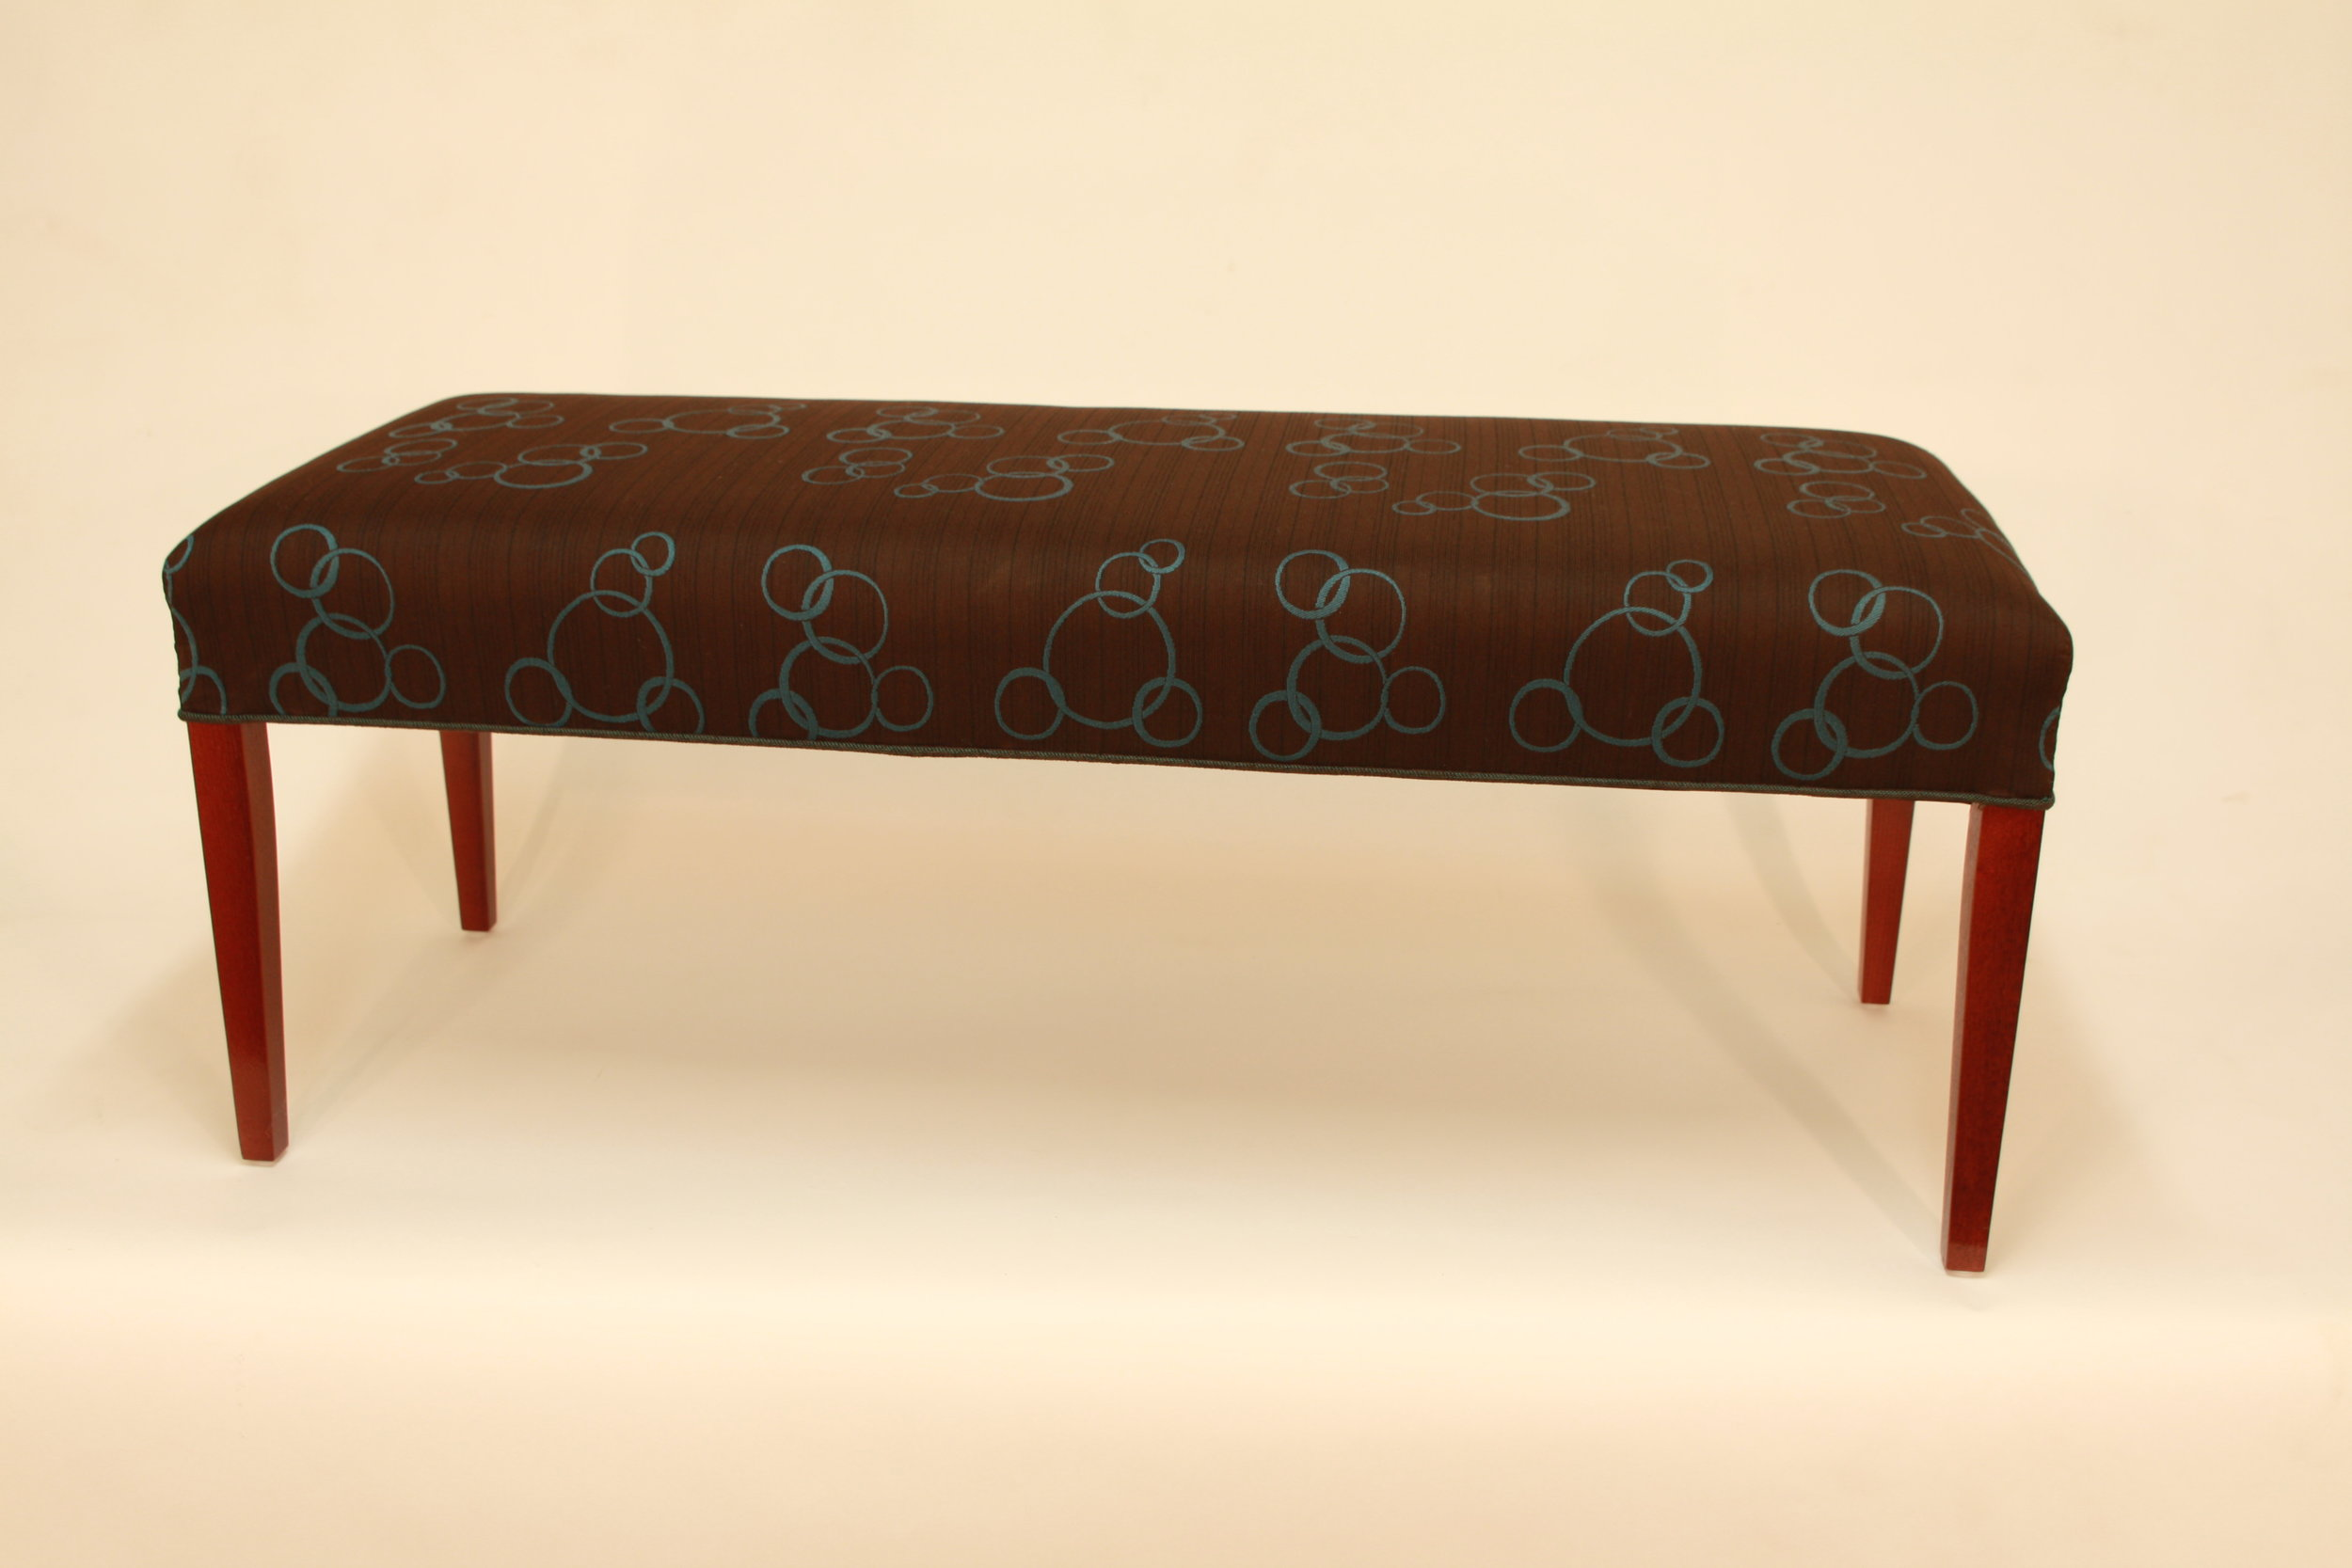 Upholstered accent bench